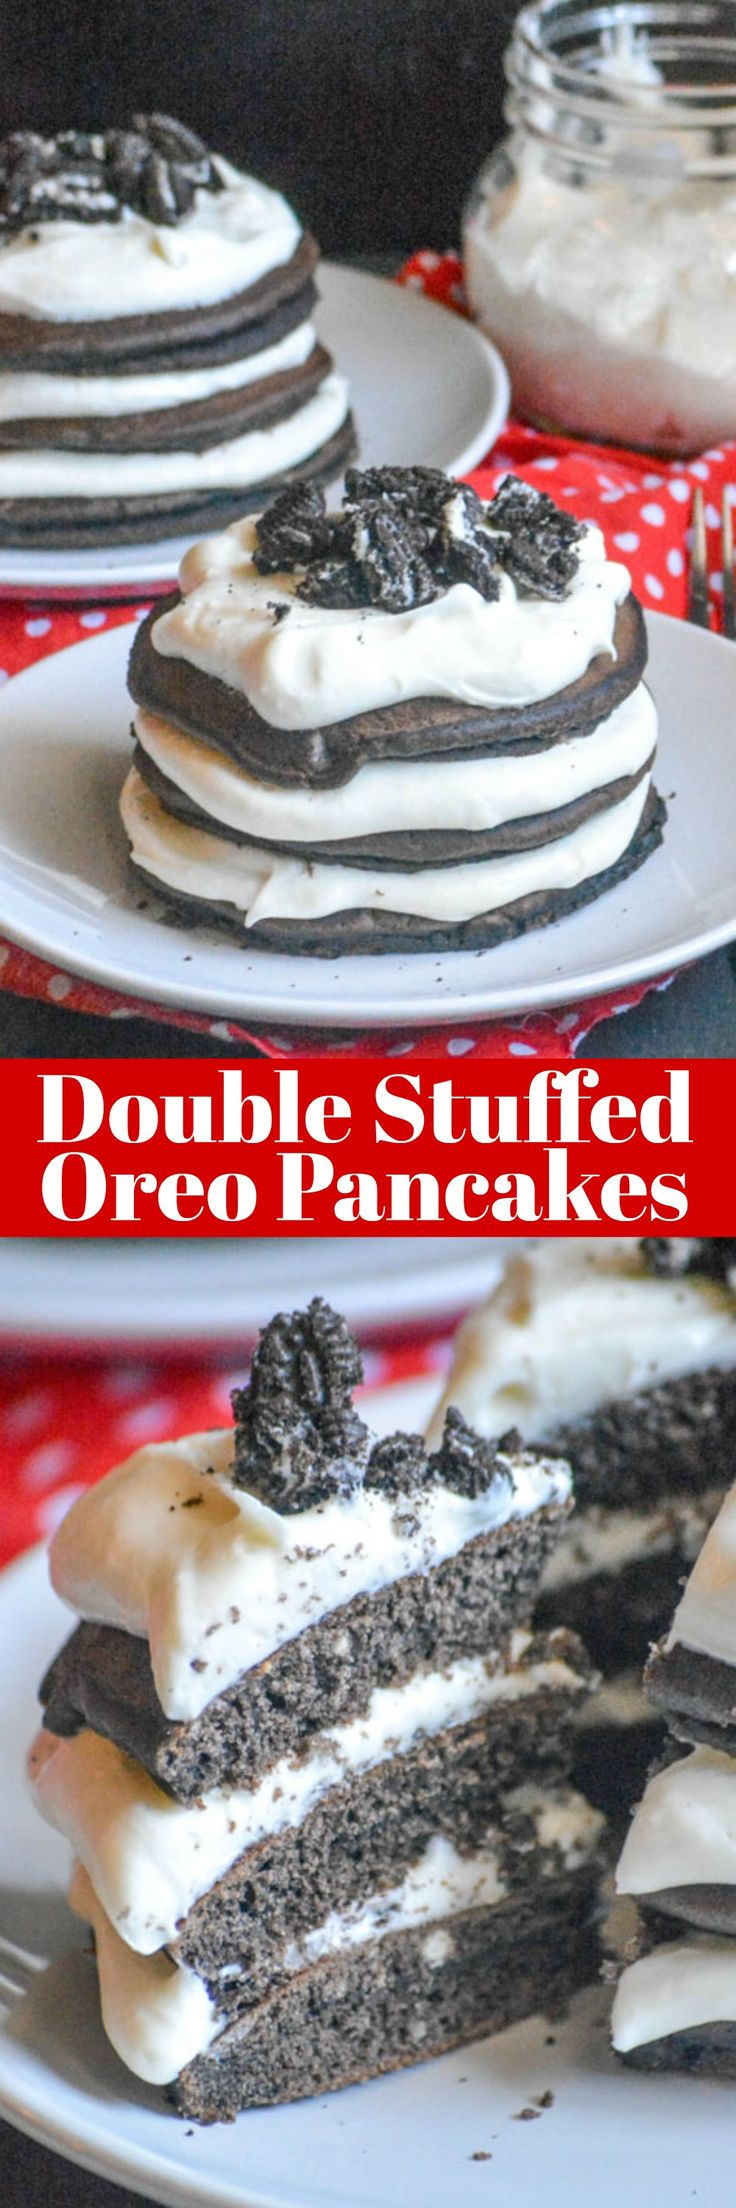 Double Stuffed Oreo Pancake Stacks | These delectable Double Stuffed Oreo Pancake Stacks are perfect for sharing, and for sharing a moment together. Luscious cream cheese based oreo filling is liberally spread between layers of chocolate oreo flavored fluffy pancakes. | 4 Sons R Us